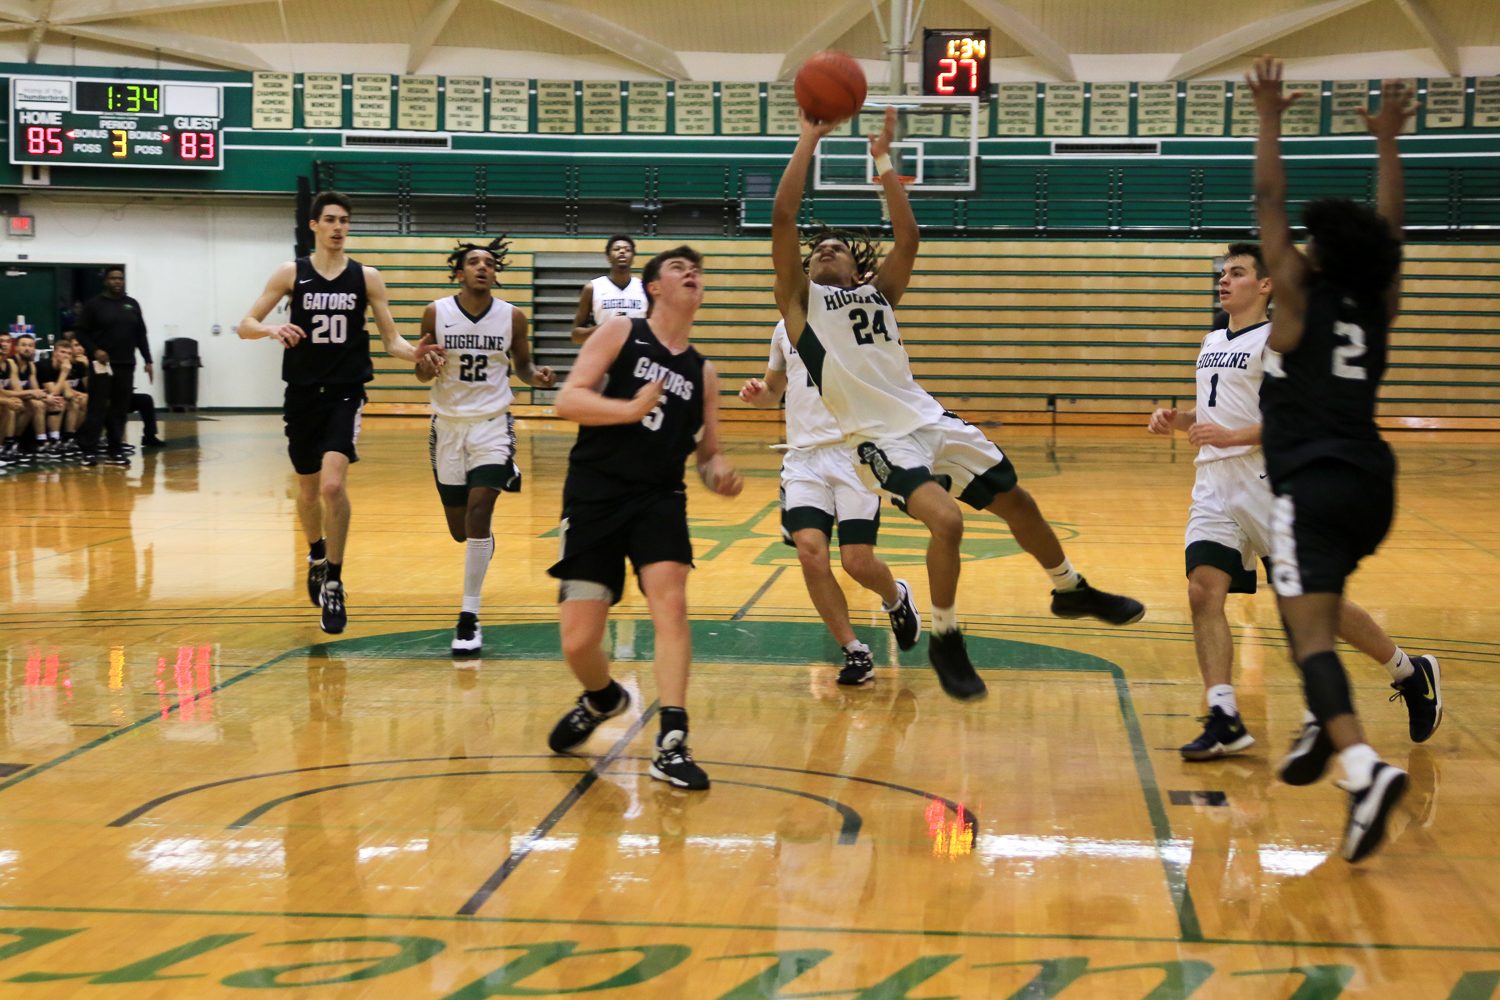 Men's Basketball Action Photo